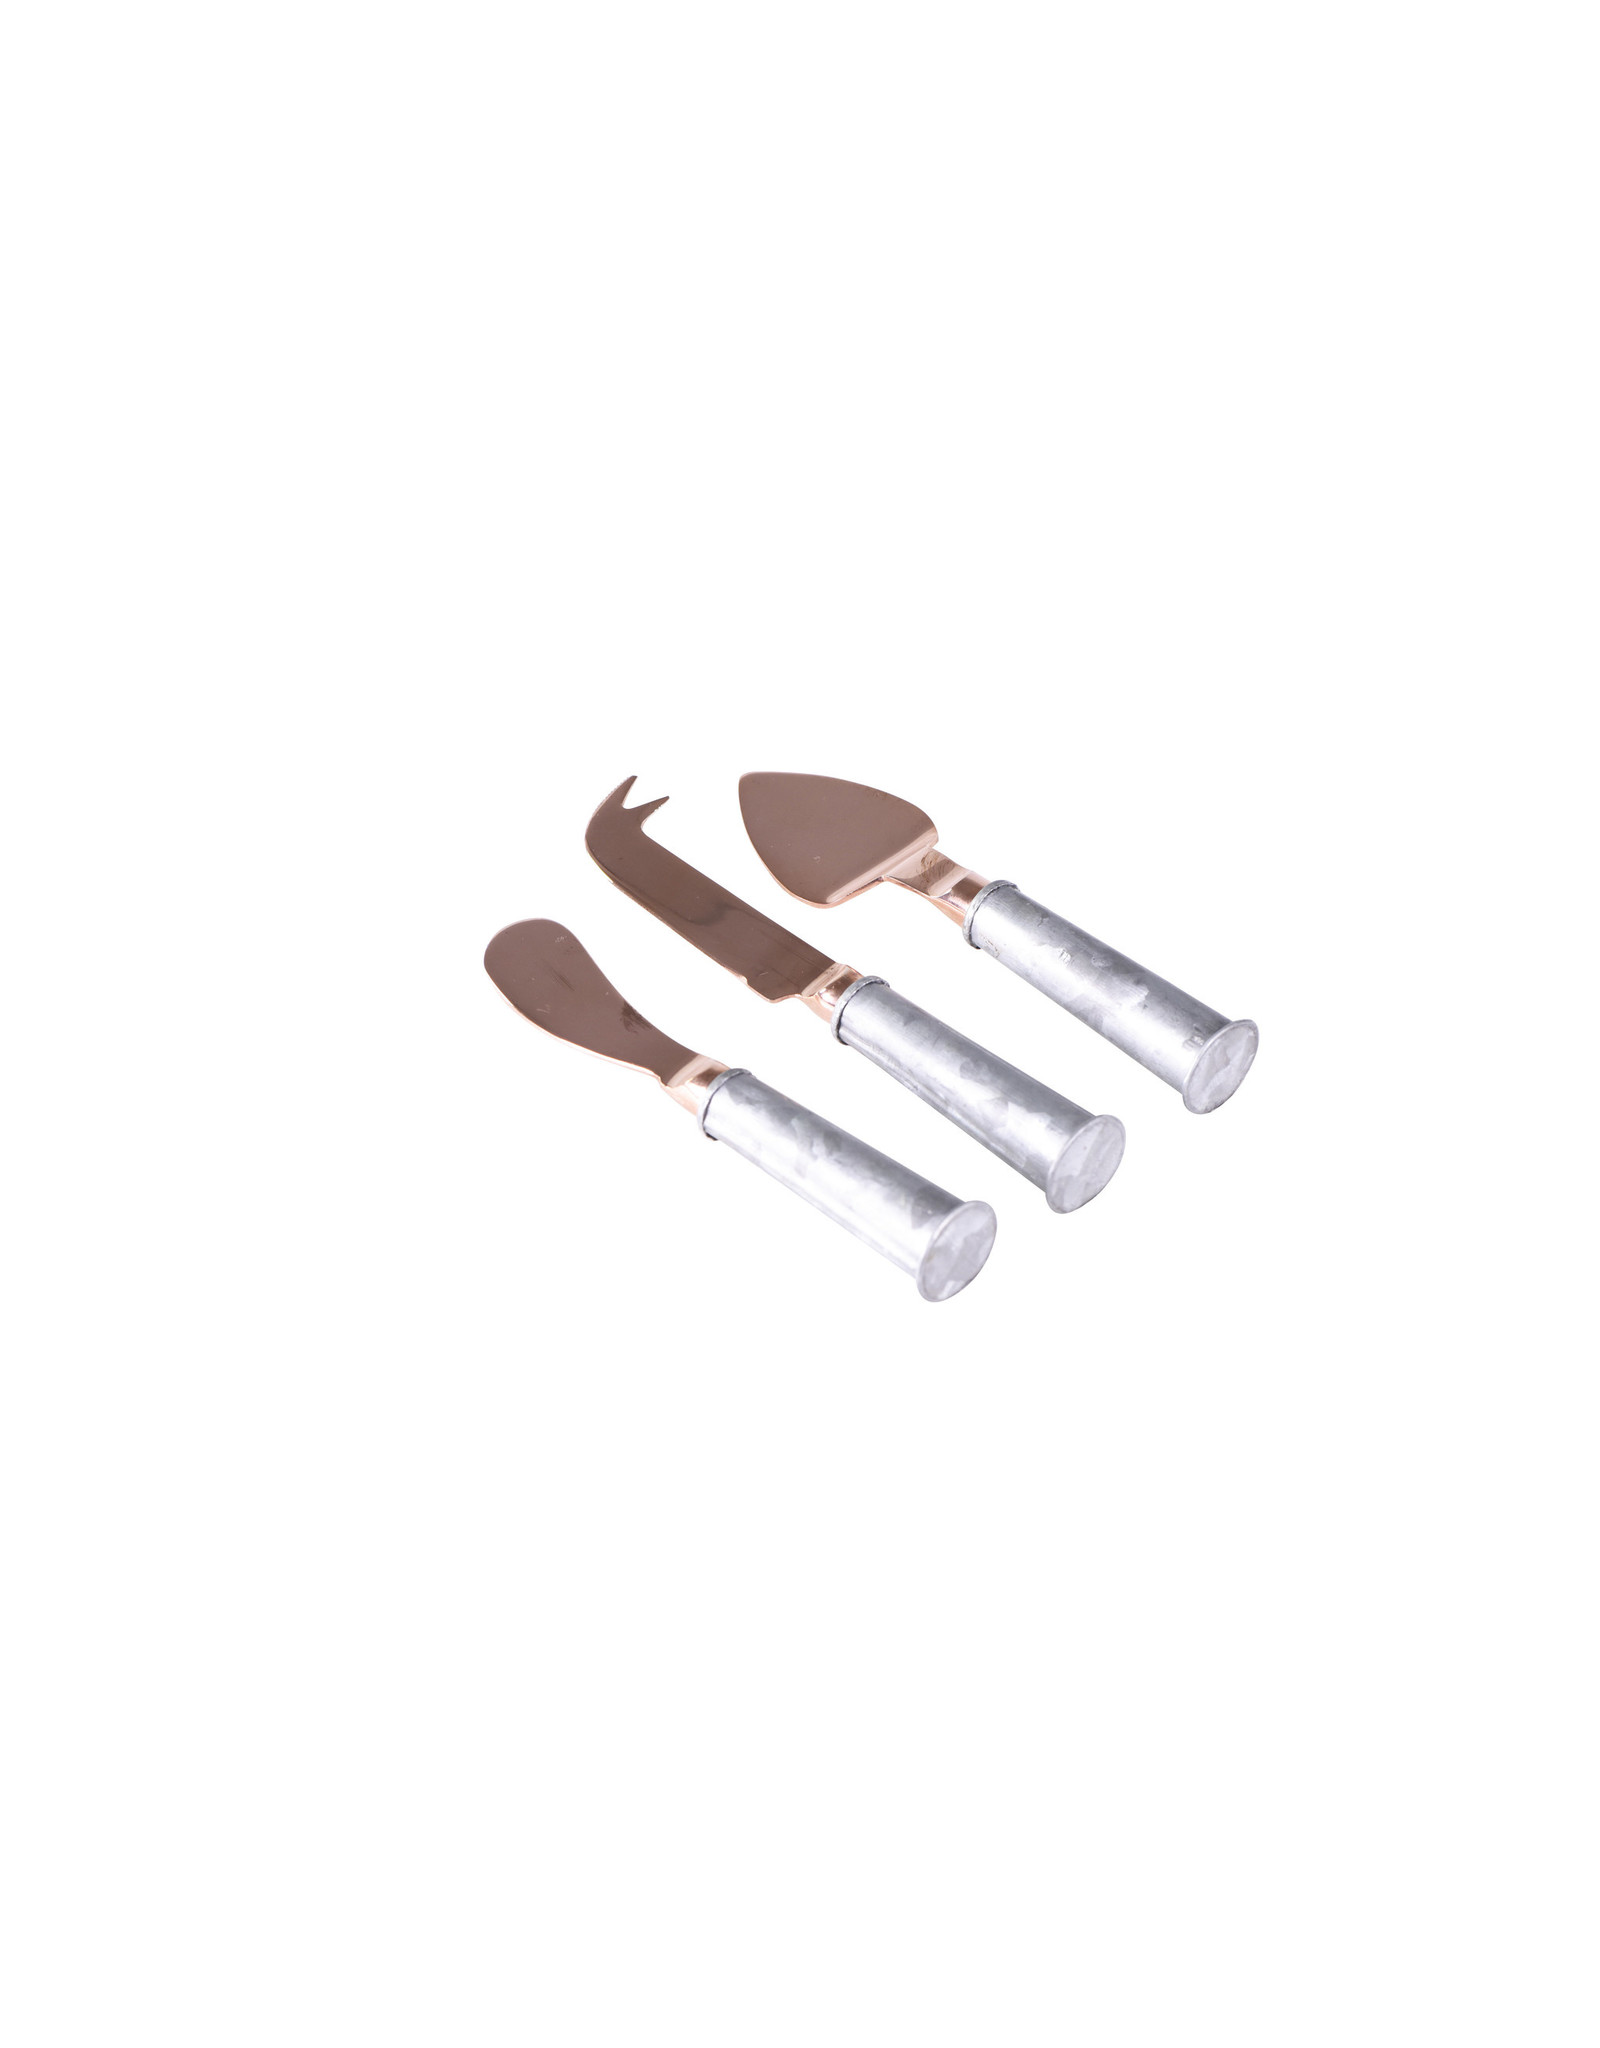 Wilkie Brothers Wilkie 3 Pce Cheese Knife Set with Rose Gold Handle